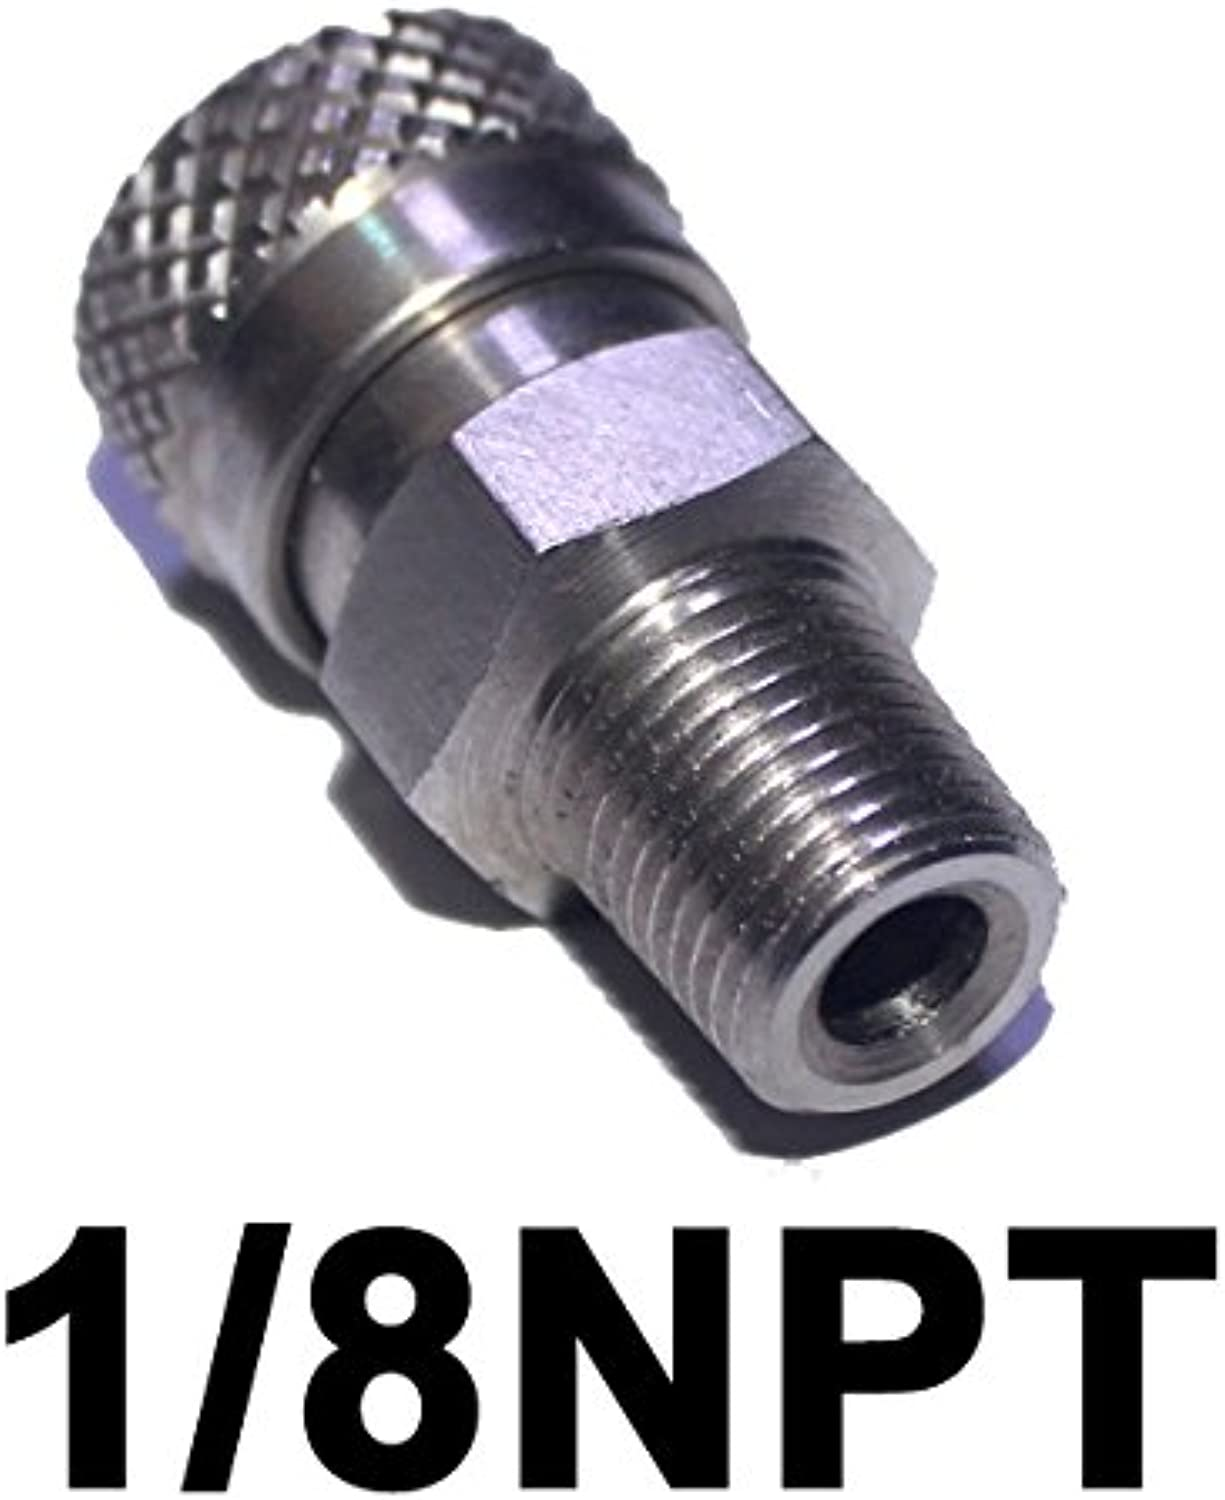 Outdoor Guy PCP Air Rifle 8mm Stainless Quick Release Disconnect Coupler Fitting Female Socket for Filling (1 8NPT)